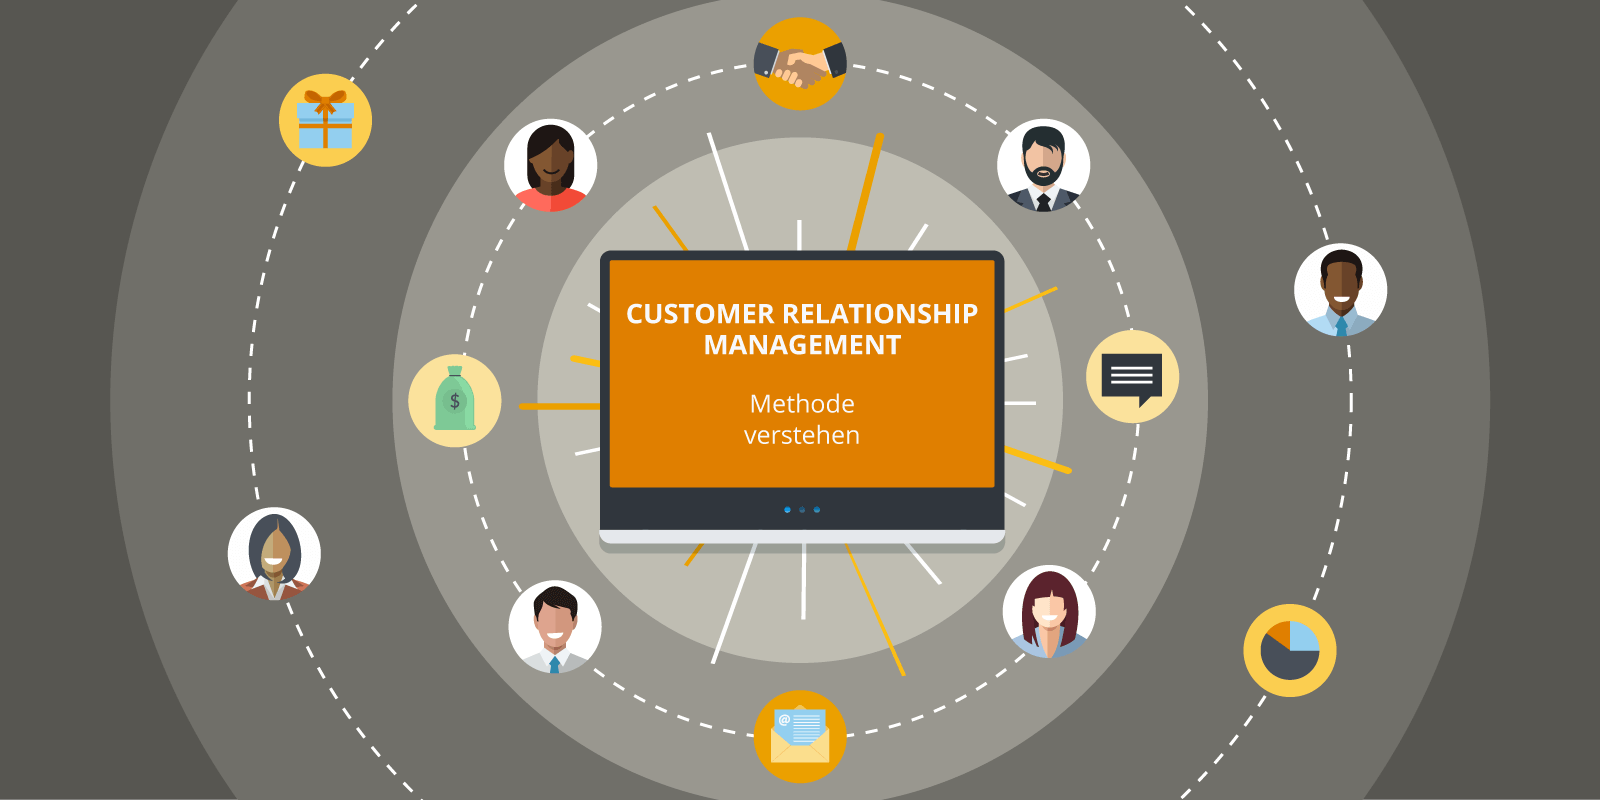 Illustration zur Methode des Customer Relationship Management